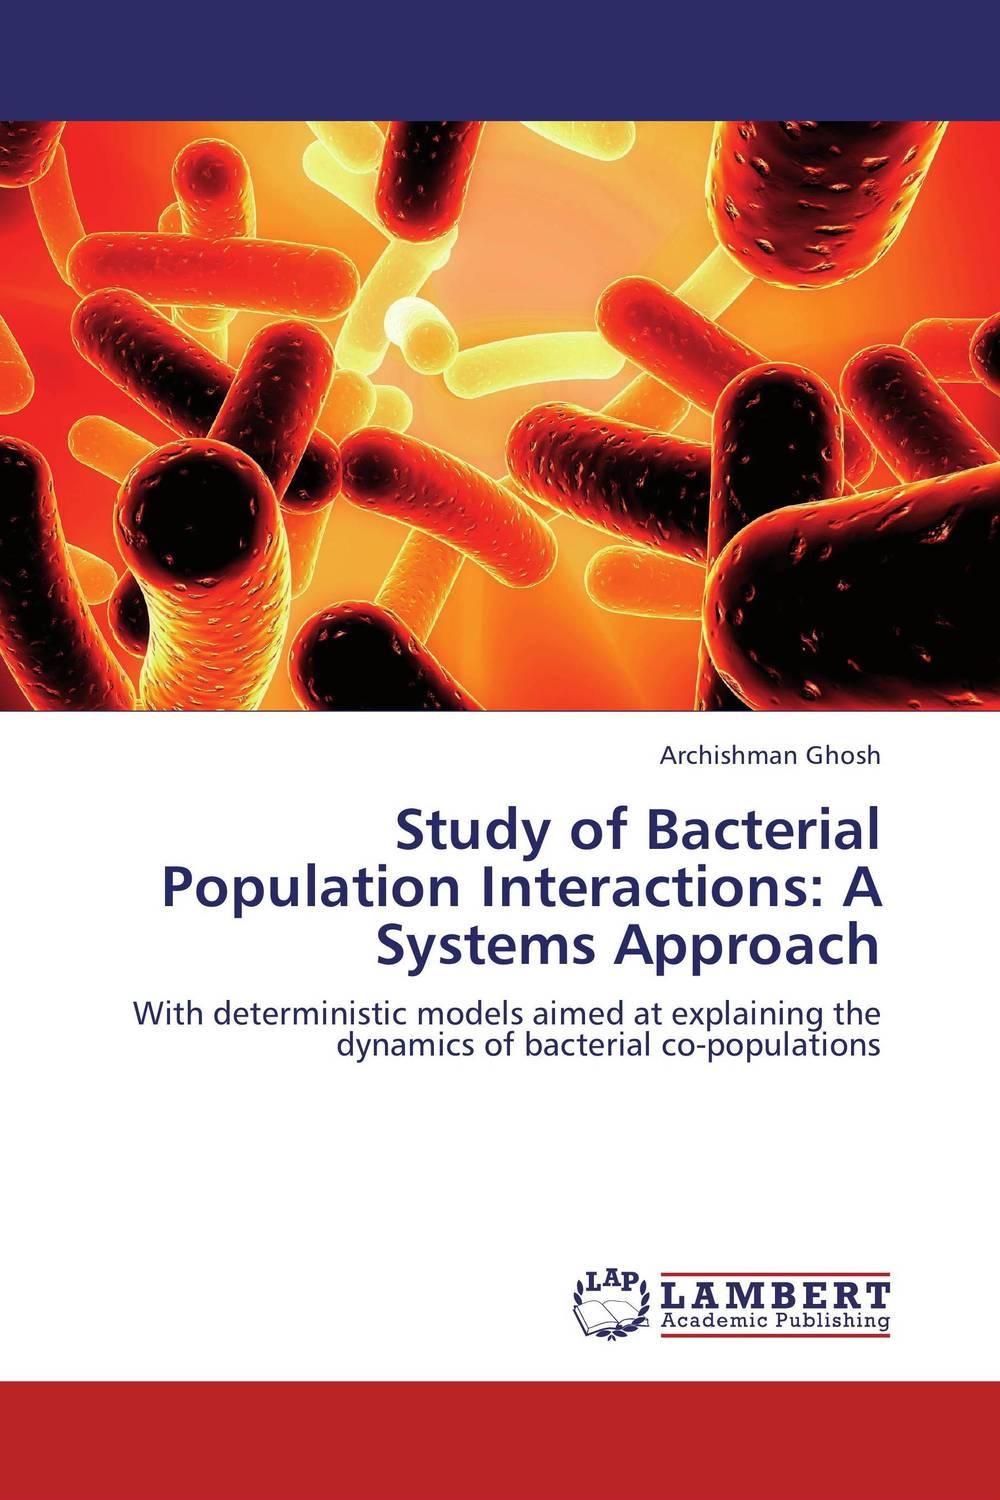 Study of Bacterial Population Interactions: A Systems Approach analysis of bacterial colonization on gypsum casts